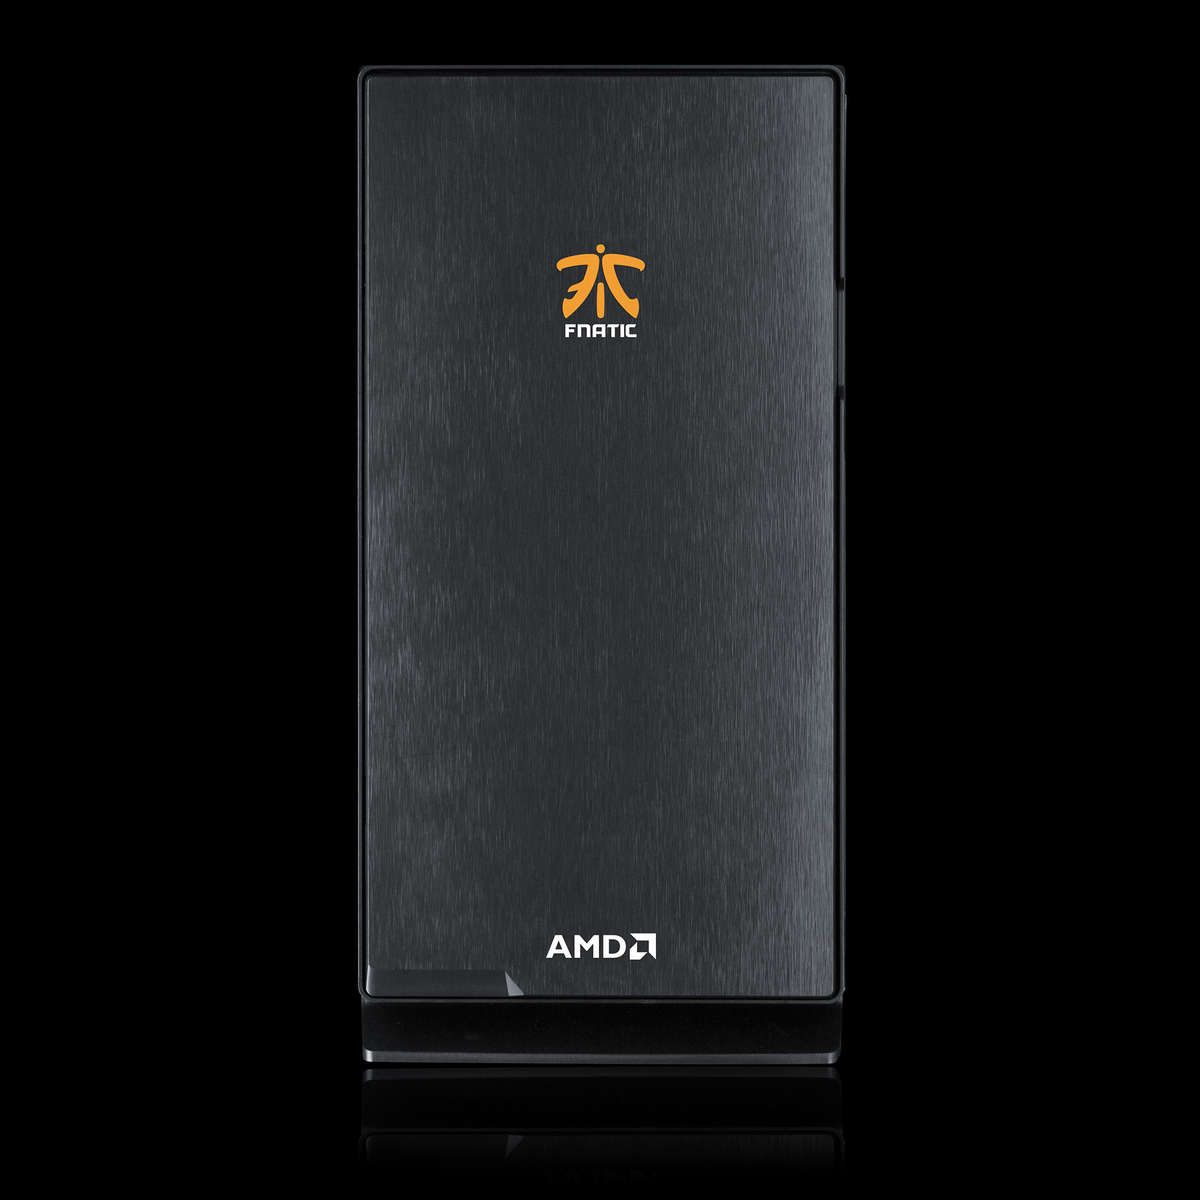 Chillblast Fnatic Official Ryzen APU Gaming PC